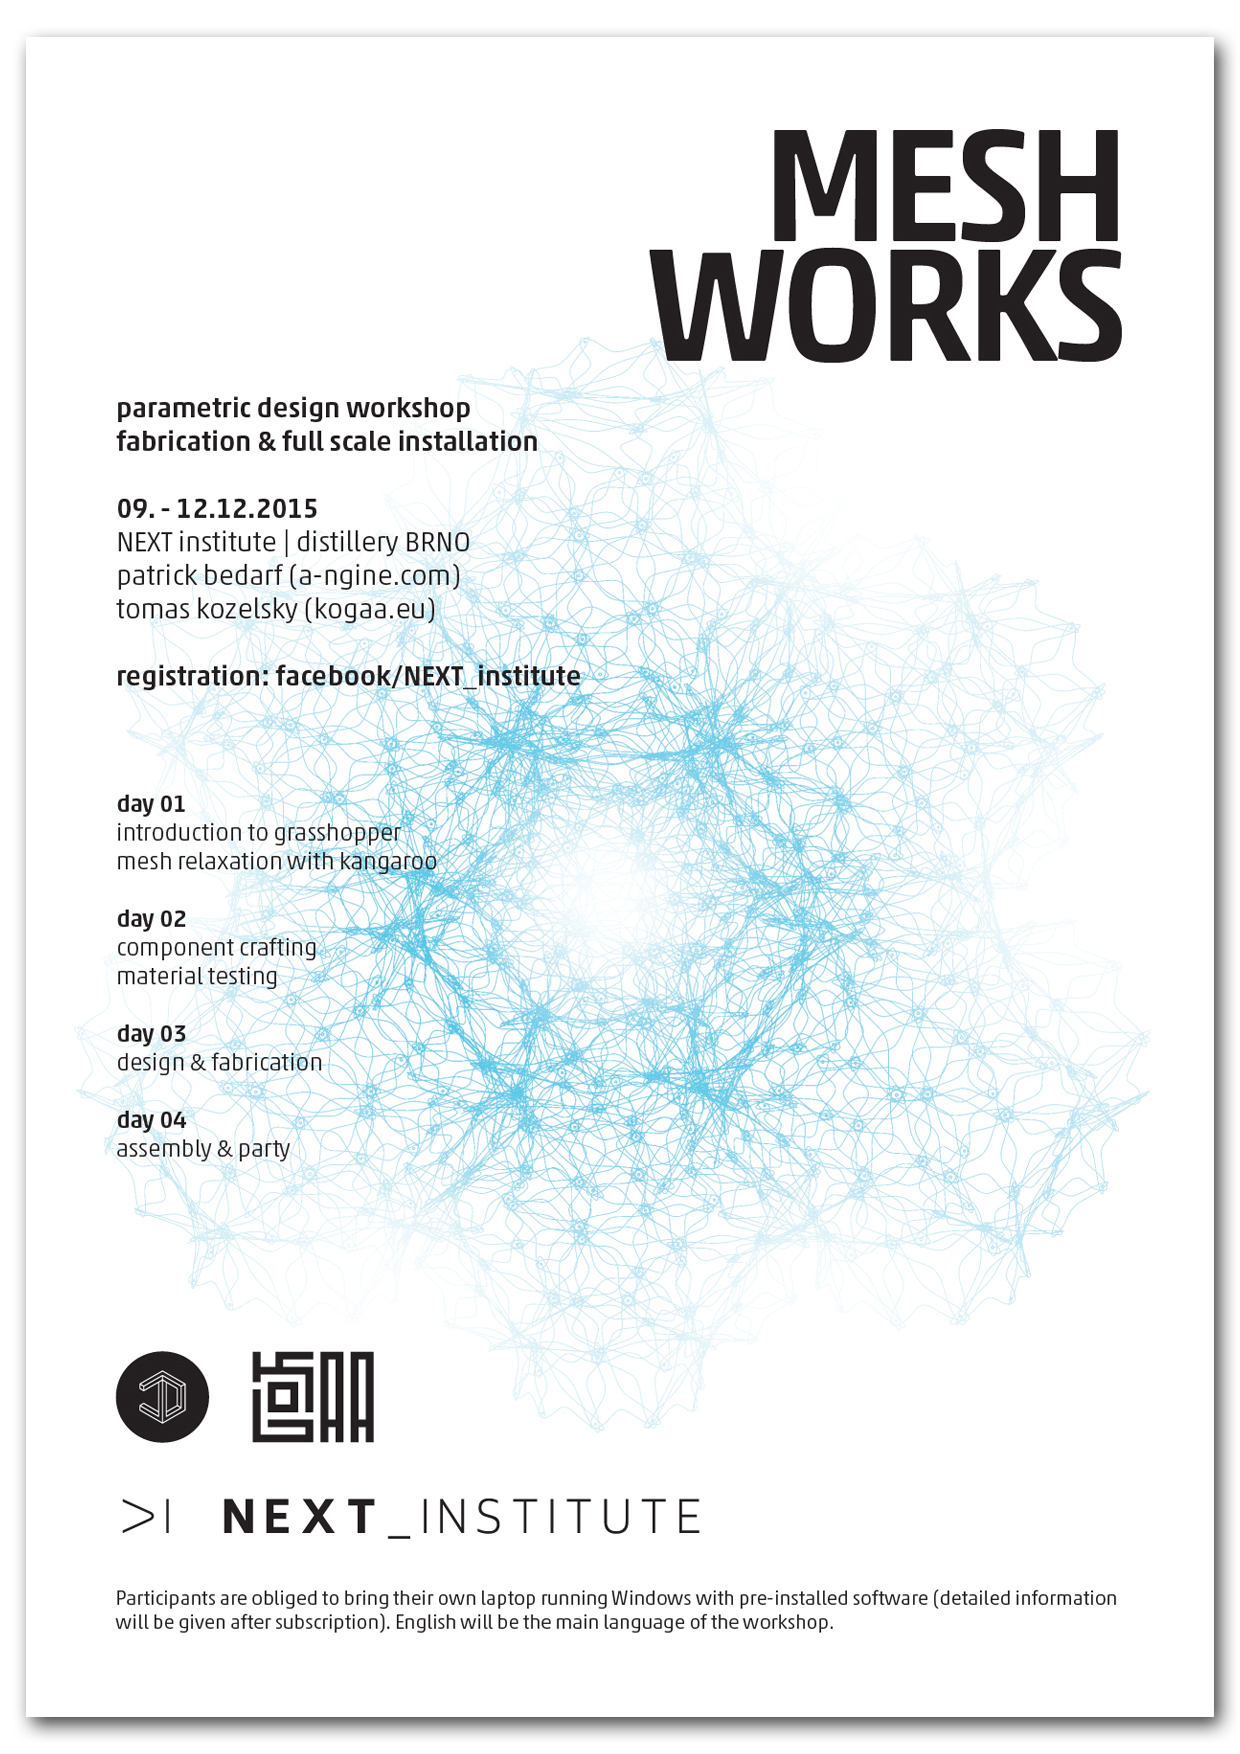 meshworks dating Dep meshworks, a cae driven platform for rapid concept cae and cad model generation, meshing & morphing announced the release of its latest meshworks80 version with whole new category of modules that transforms the product development the appended modules enables cae to take the lead role in .